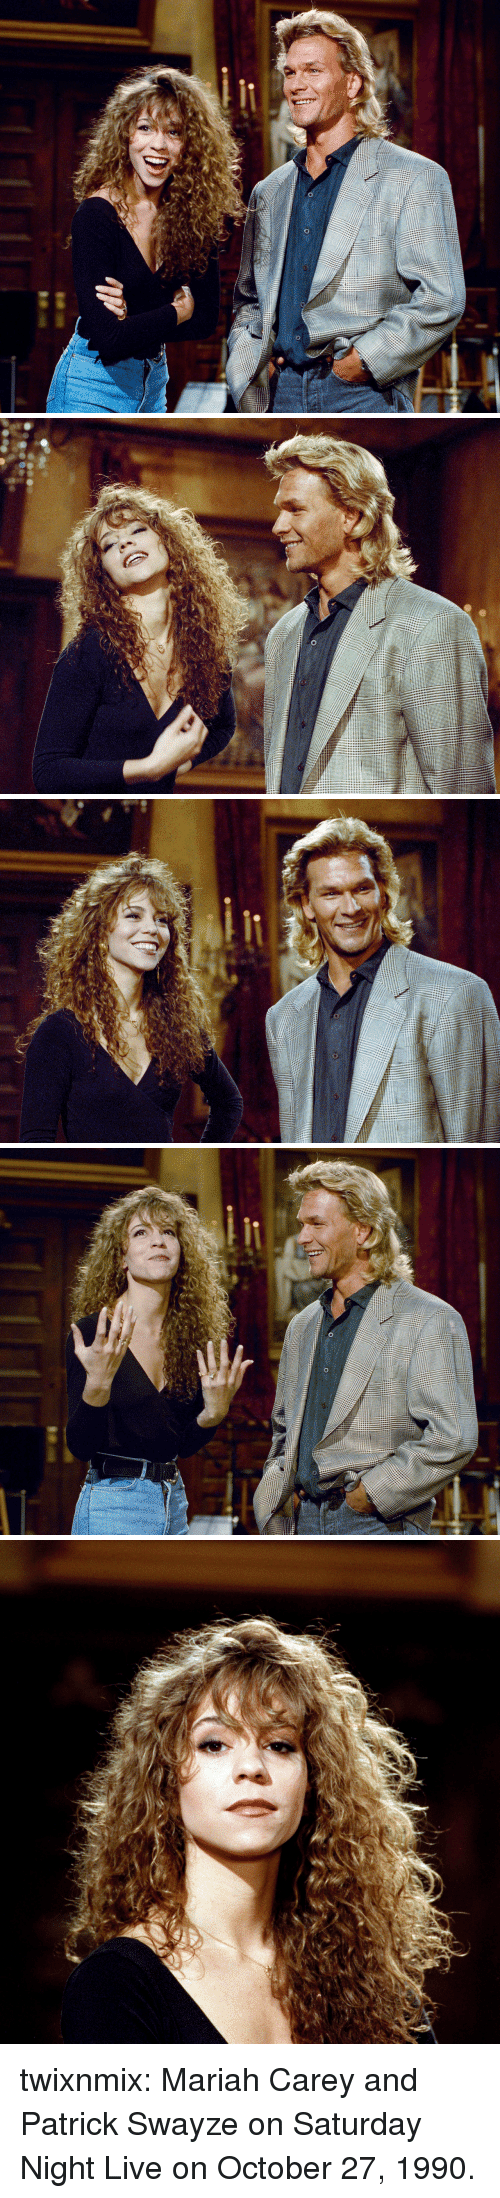 Mariah Carey, Saturday Night Live, and Tumblr: twixnmix:  Mariah Carey and Patrick Swayze on Saturday Night Live on October 27, 1990.